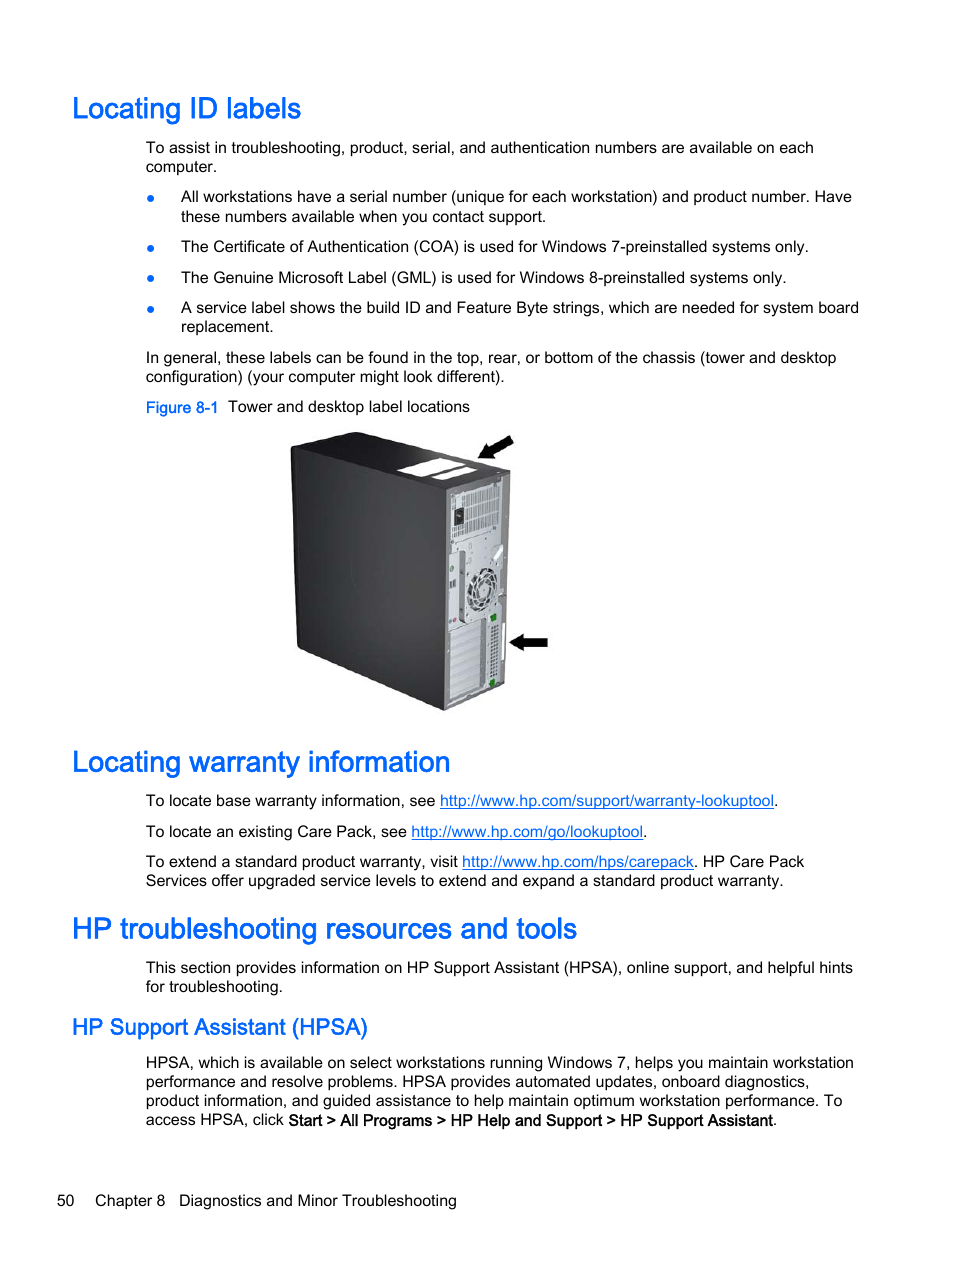 Locating id labels, Locating warranty information, Hp